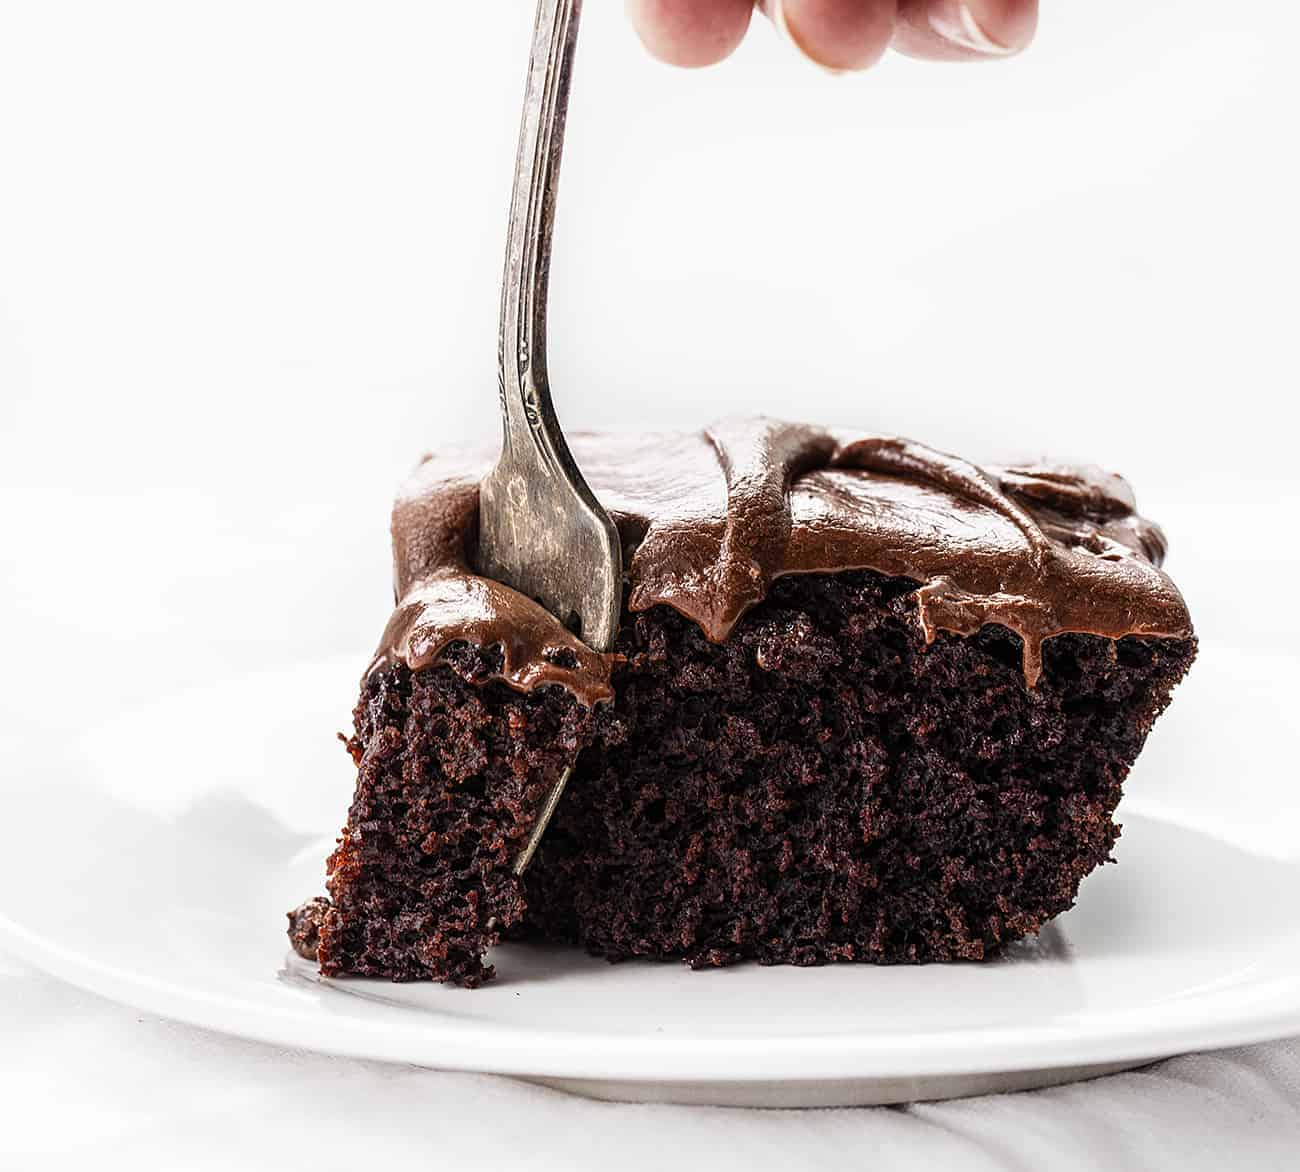 Fork Taking Bite out of Chocolate Depression Cake - Wacky Cake